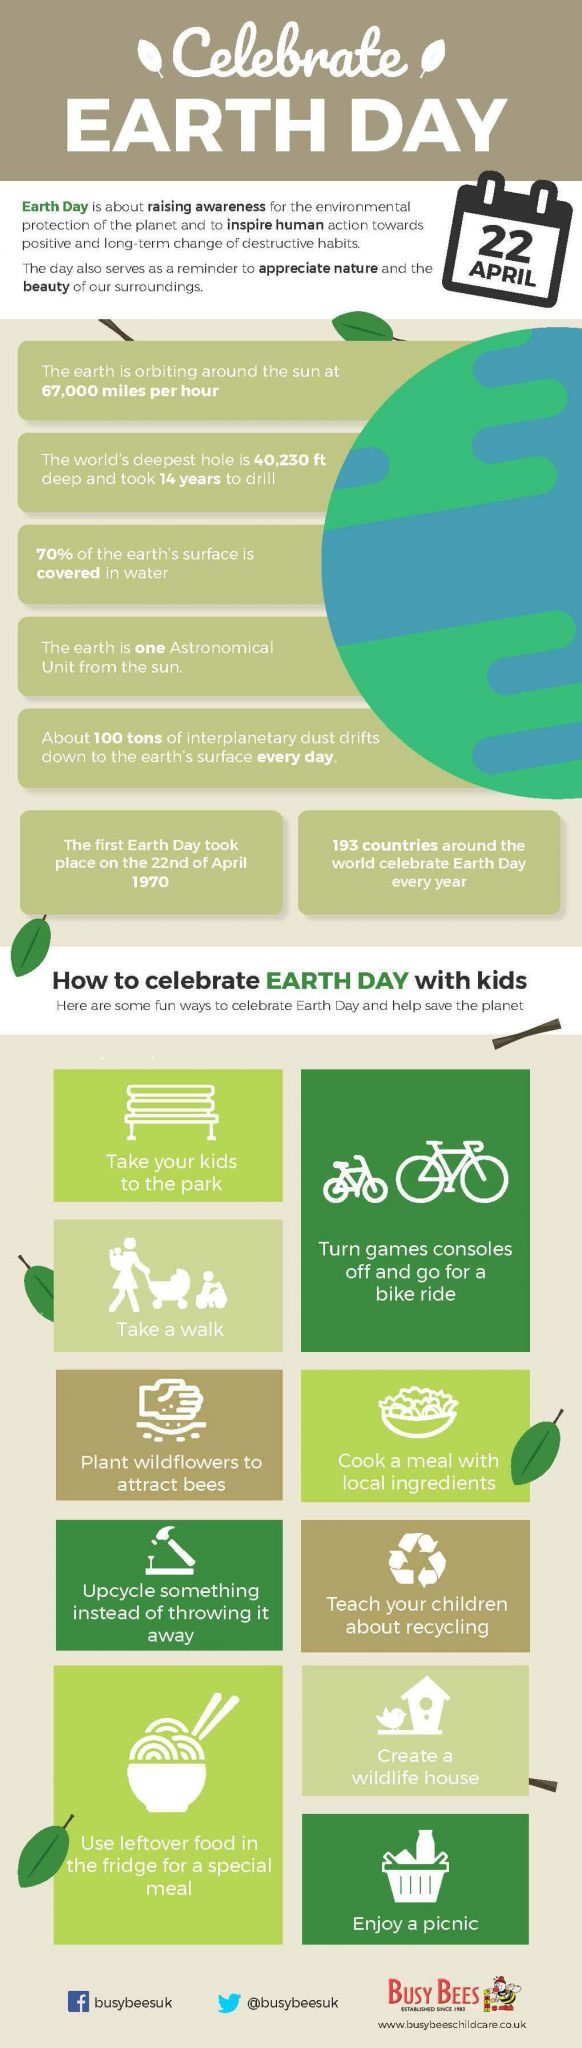 earth day 22nd april 2017 infographic